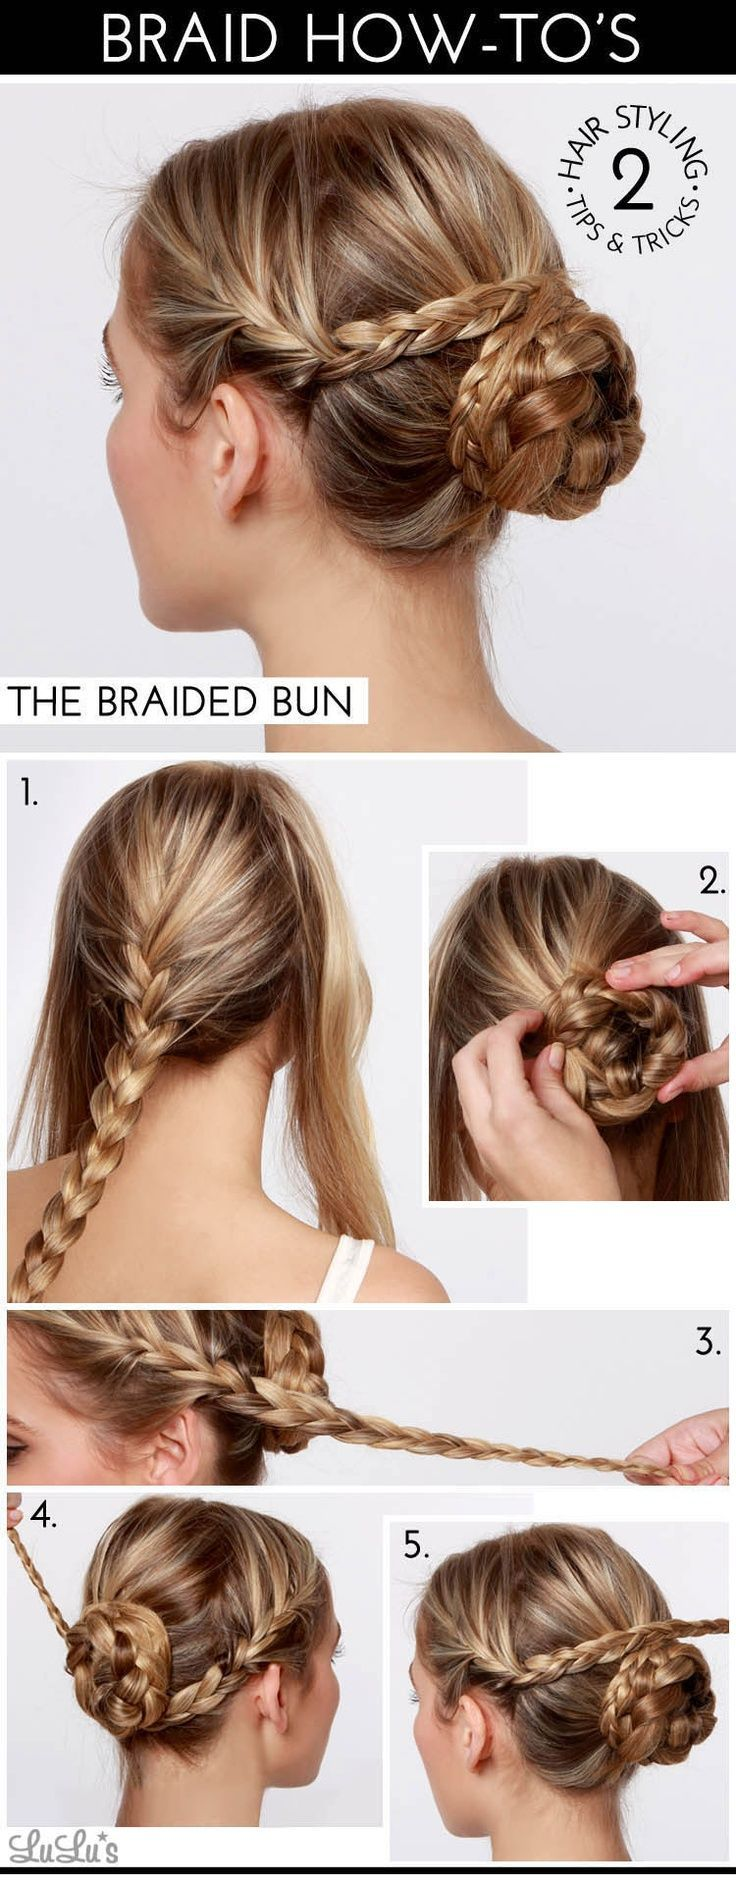 Braided Hair Bun.  Part hair 3 times.  Braid down the center section, then french braid the middle sides.  Curl all braids around each other.  Sweet and simple